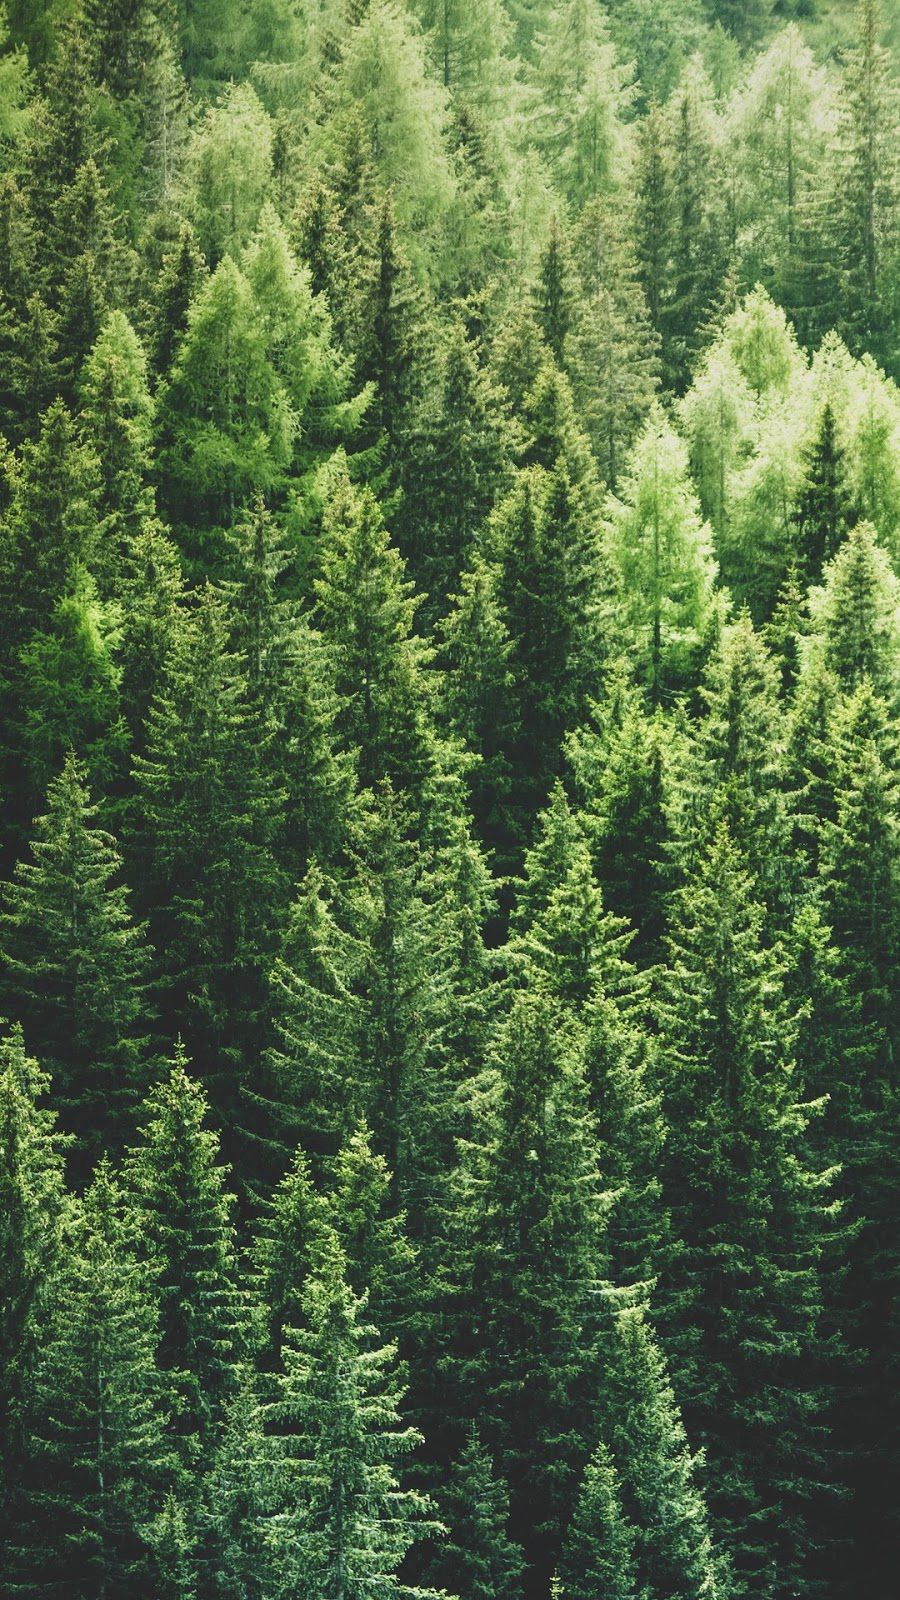 Pin By Anna Stromberg On Asmr Channel Inspo In 2020 Tree Hd Wallpaper Pine Trees Forest Tree Photography